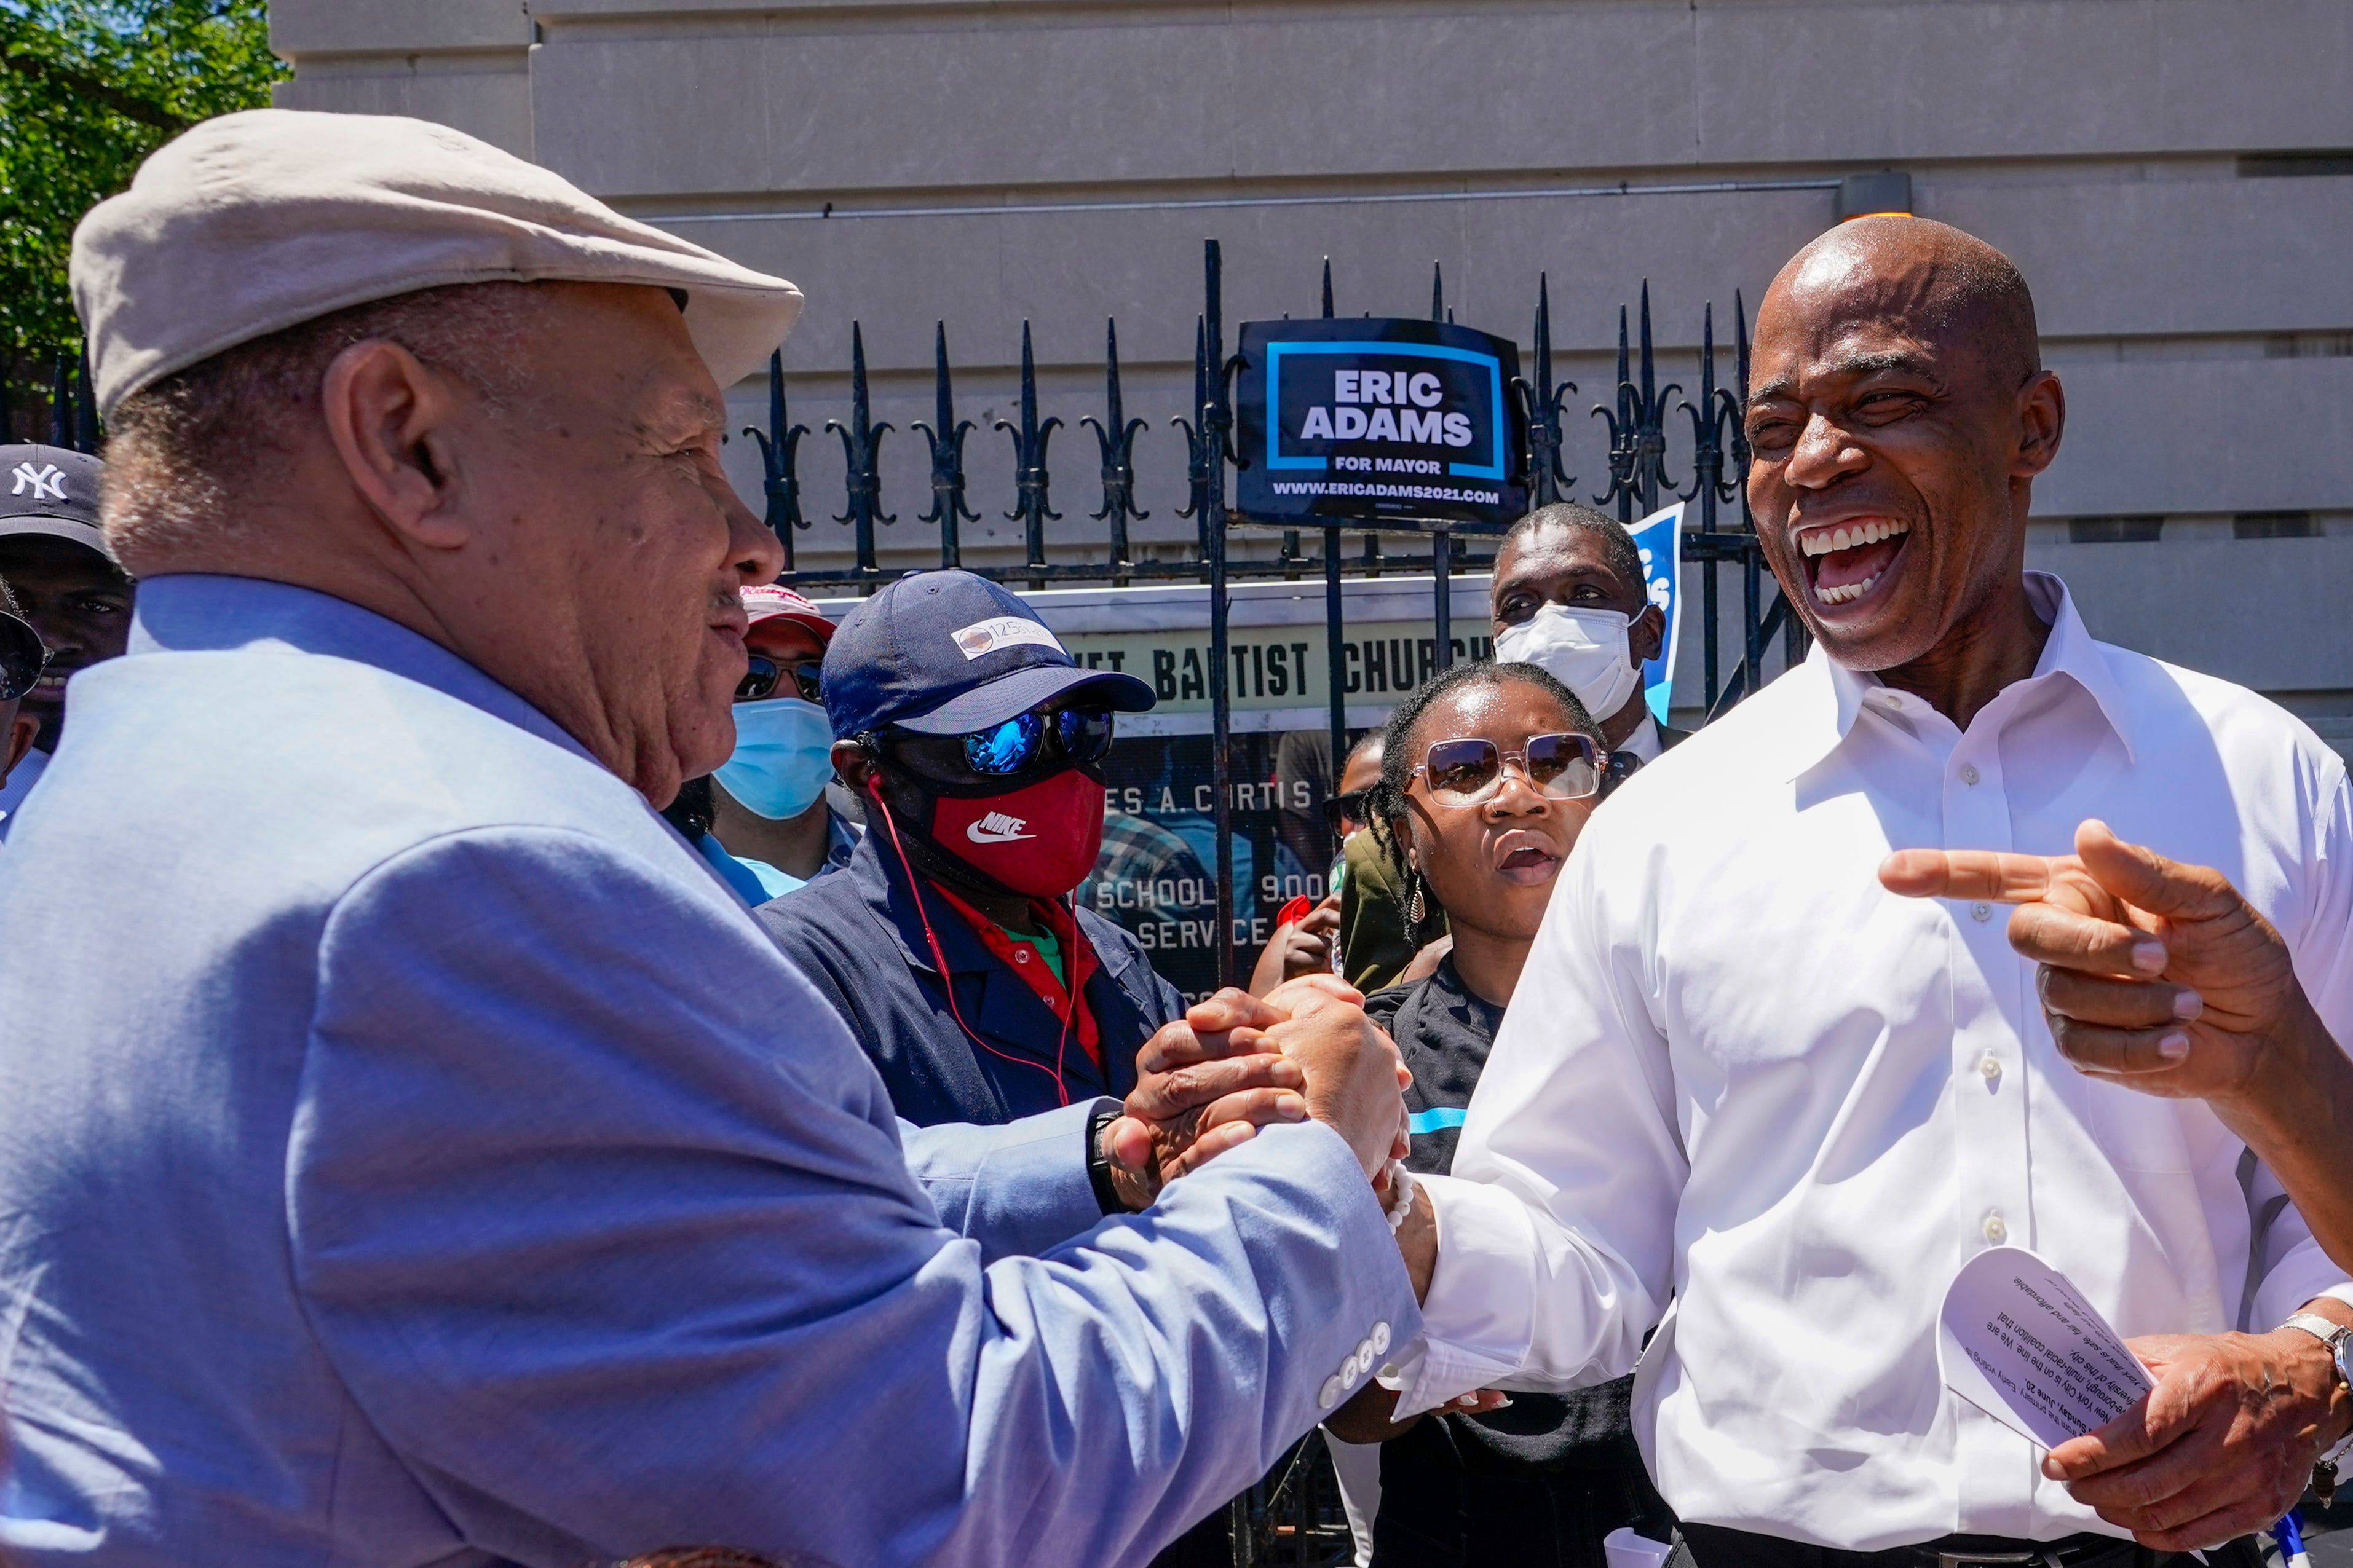 New York City's mayor race: Eric Adams has initial lead but final results may have to wait until July; Andrew Yang concedes